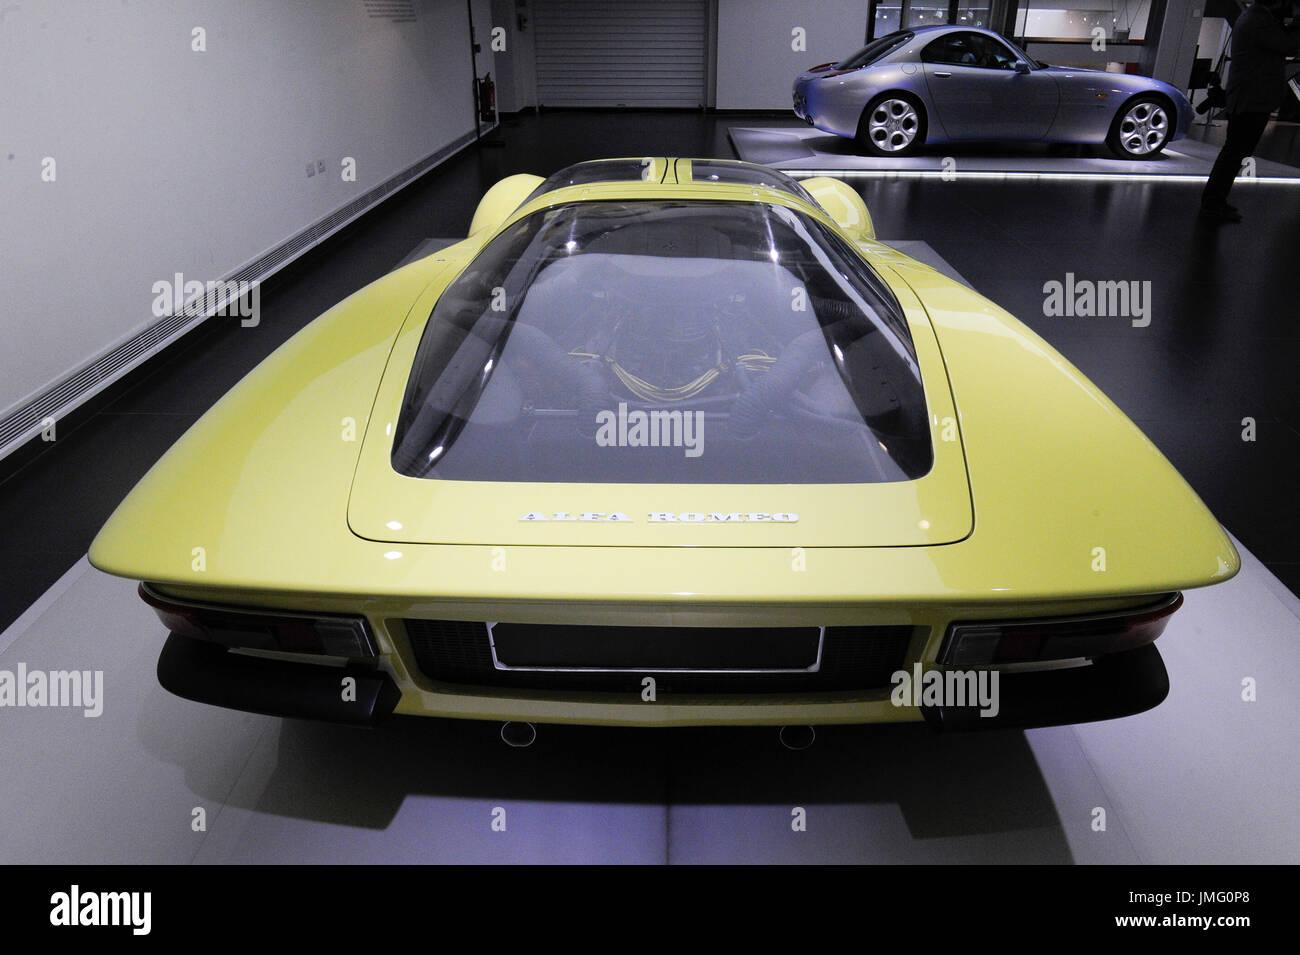 Italy Arese The Machine Time Historic Alfa Romeo Museum Pictured Stock Photo Alamy